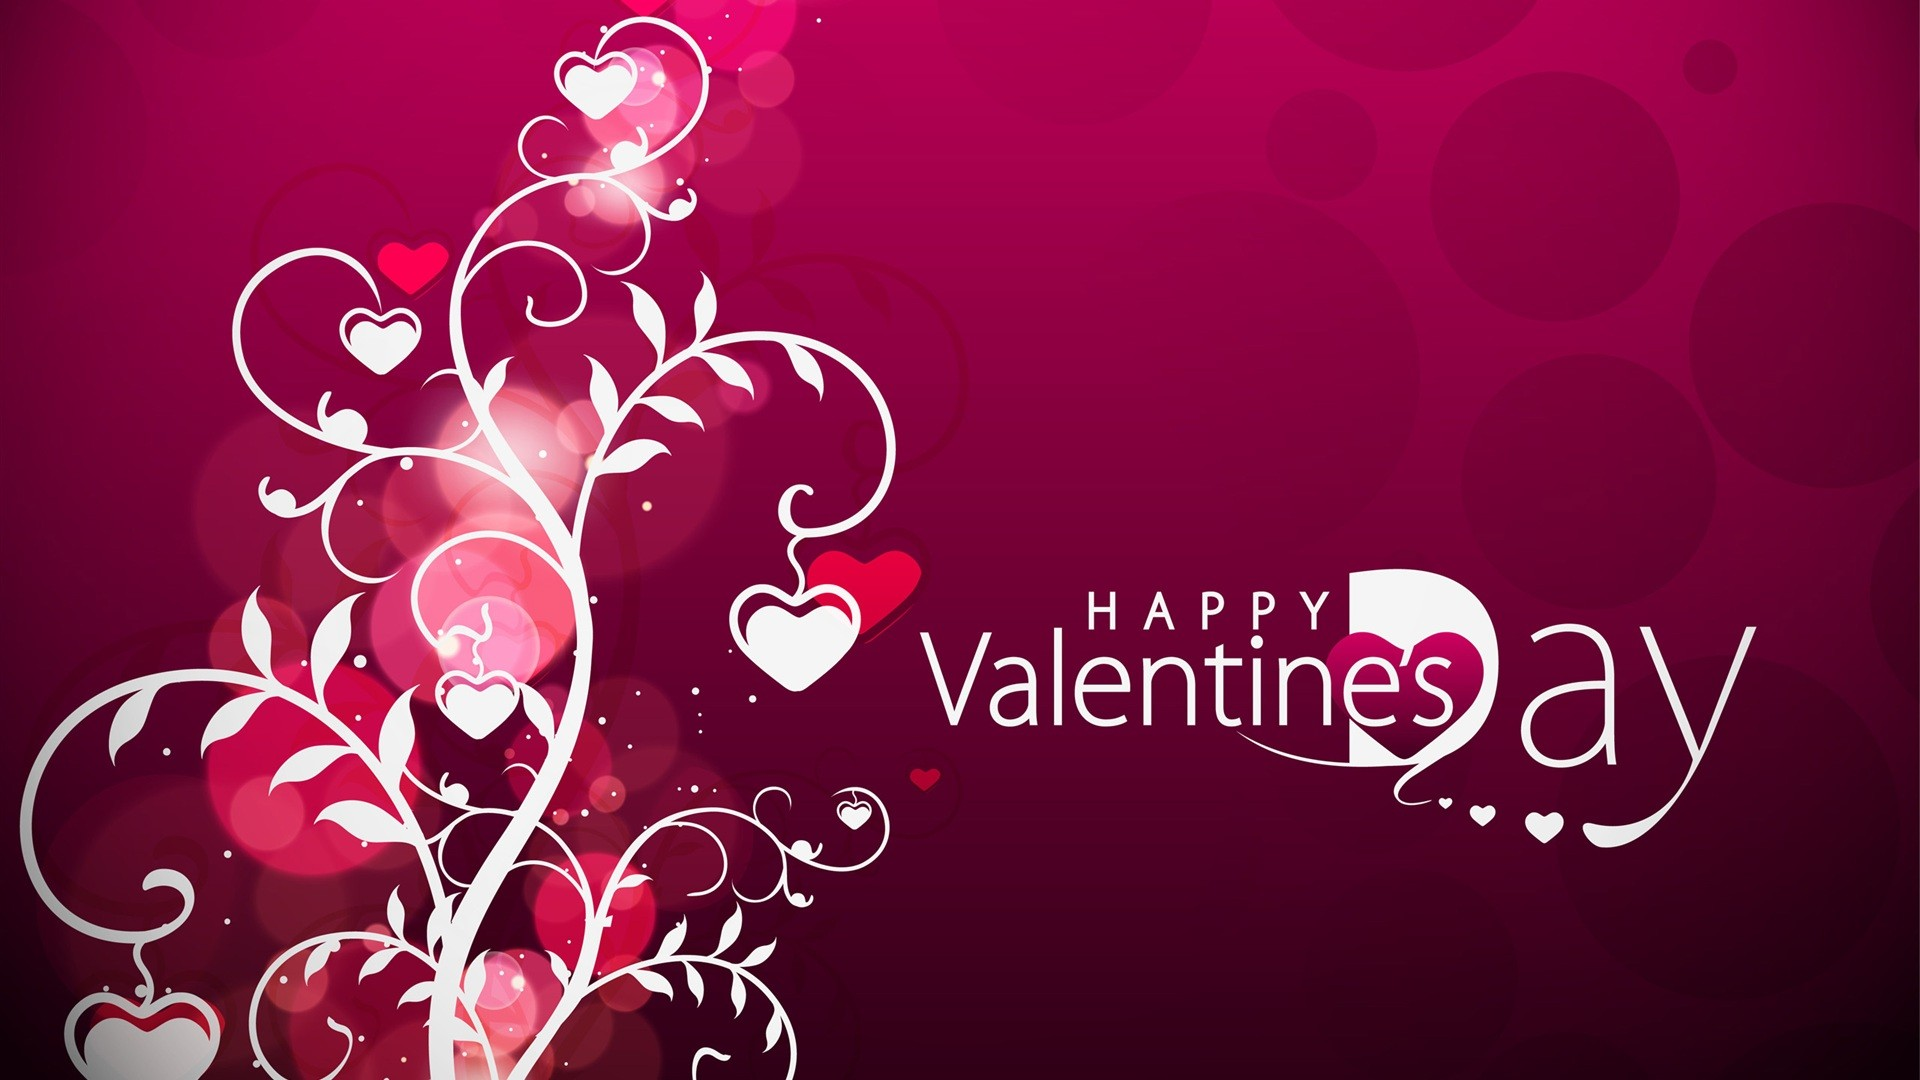 Valentines Day Wallpapers HD 2015 for Desktop Background 1920x1080